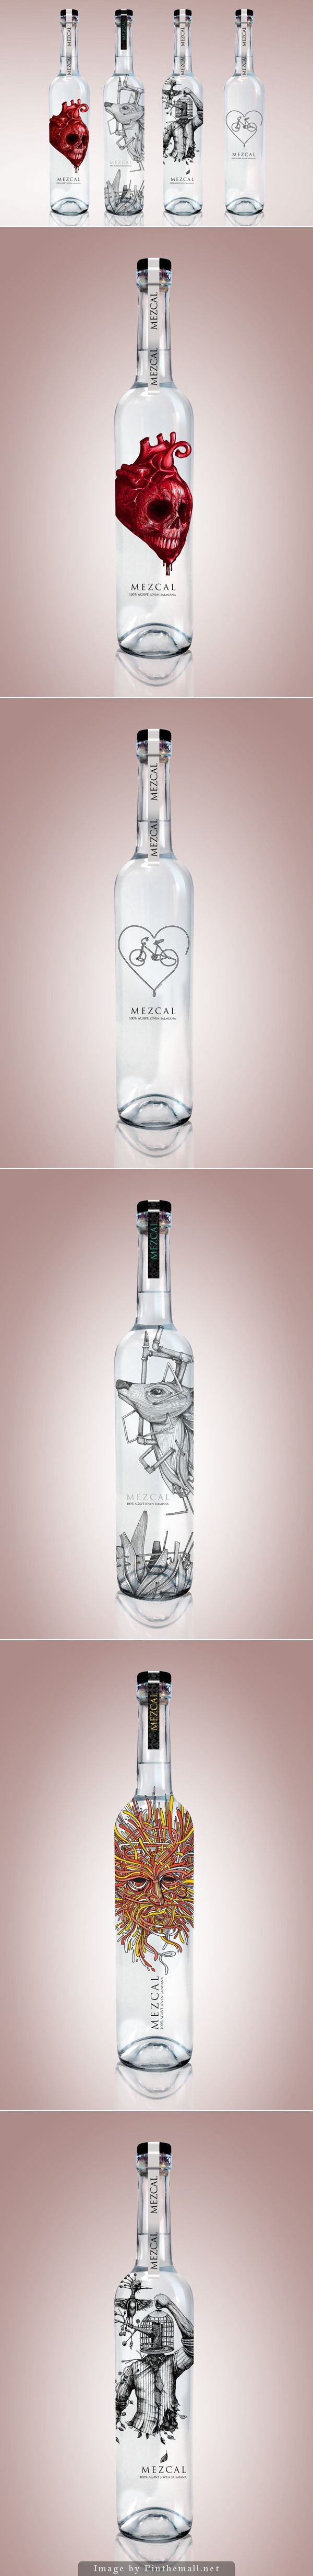 Diseños alternativos para mezcales artesanales. Awesome Mezcal packaging collection by Cesar Nandez on Behance curated by Packaging Diva PD.